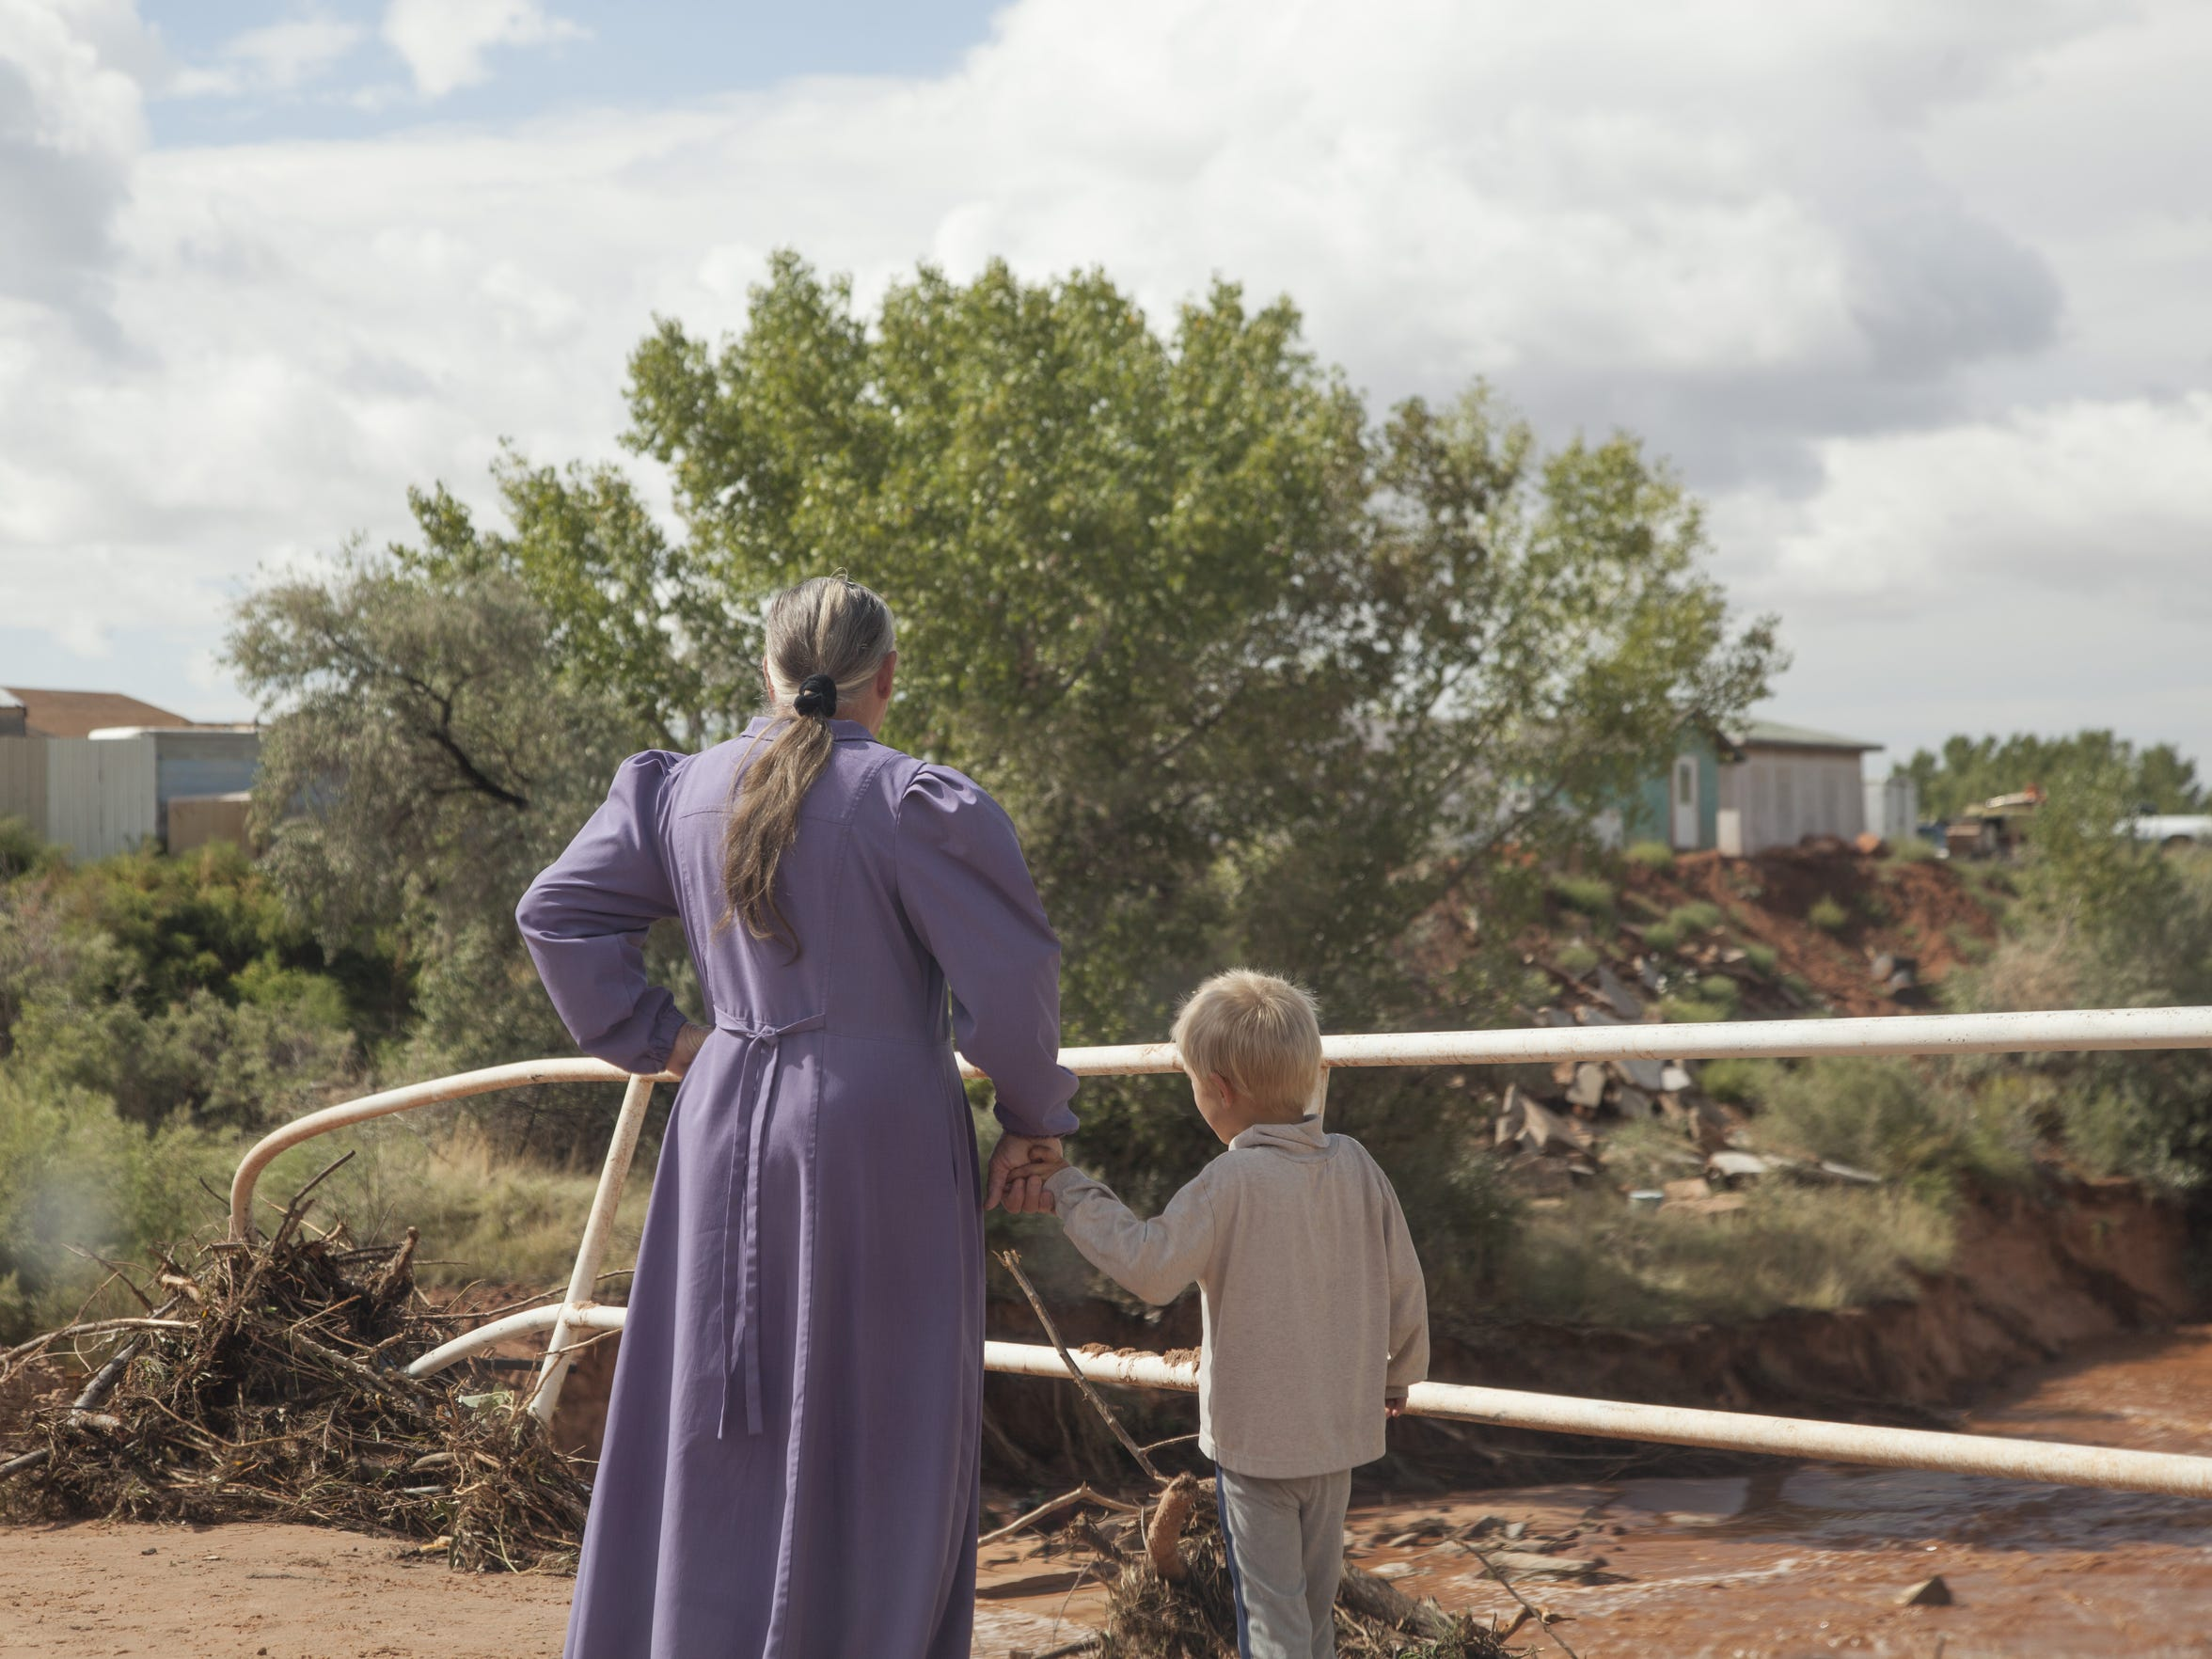 Residents of Short Creek observe damage and debris caused by a flash flood which claimed multiple lives Tuesday, Sept. 15, 2015.